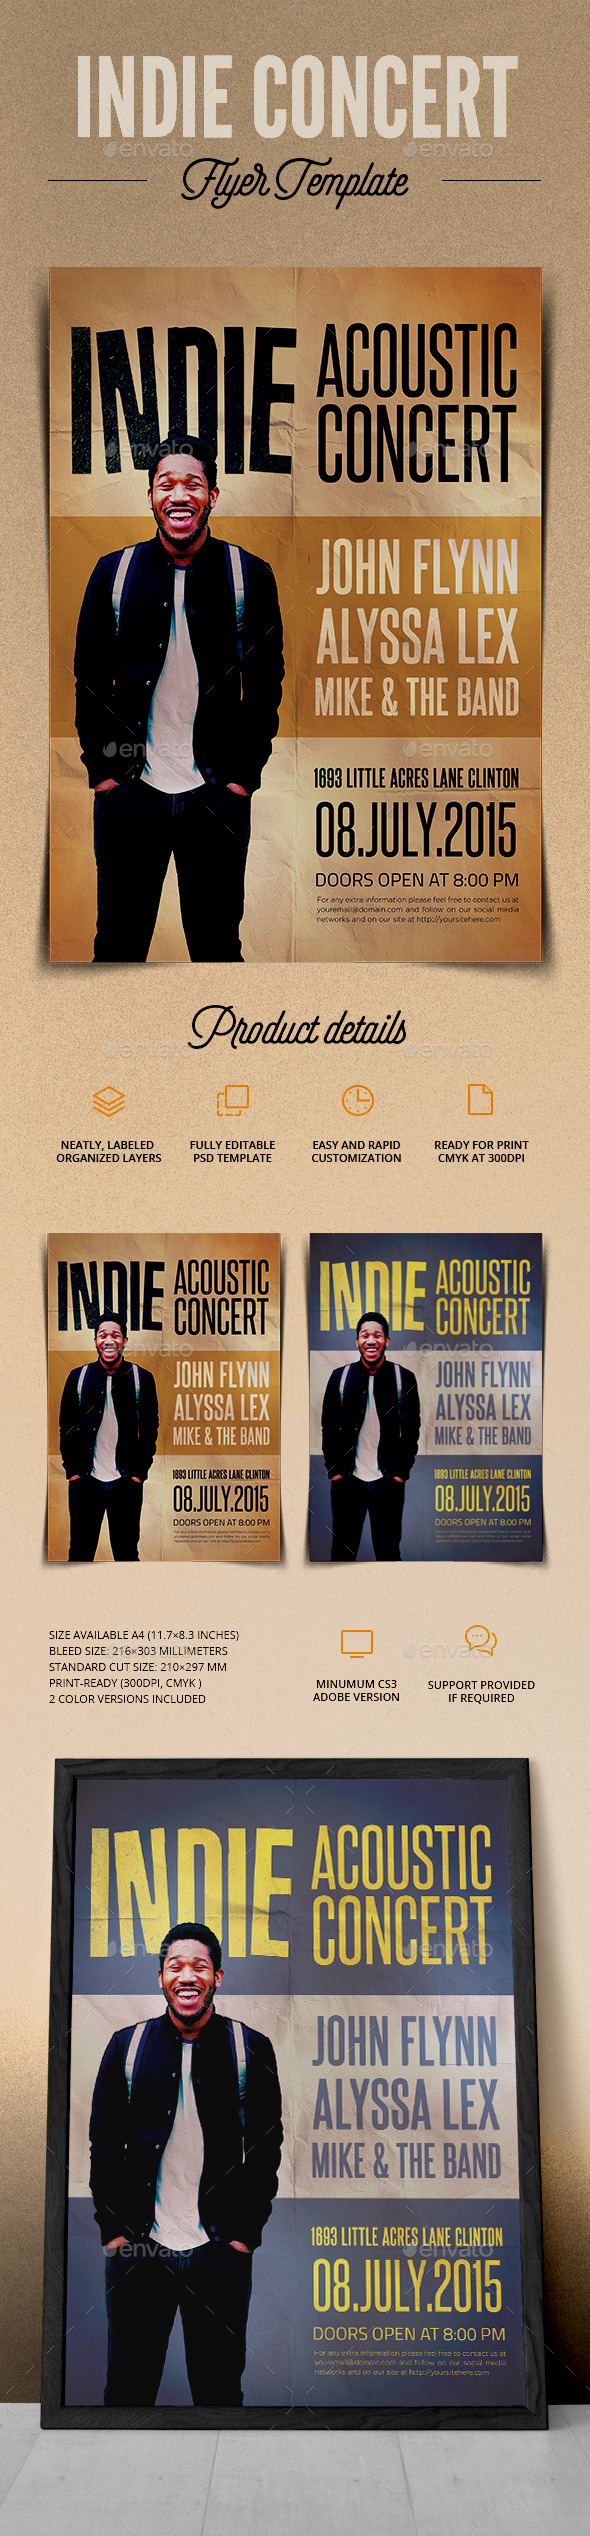 GraphicRiver Indie Acoustic Concert Flyer 11379456